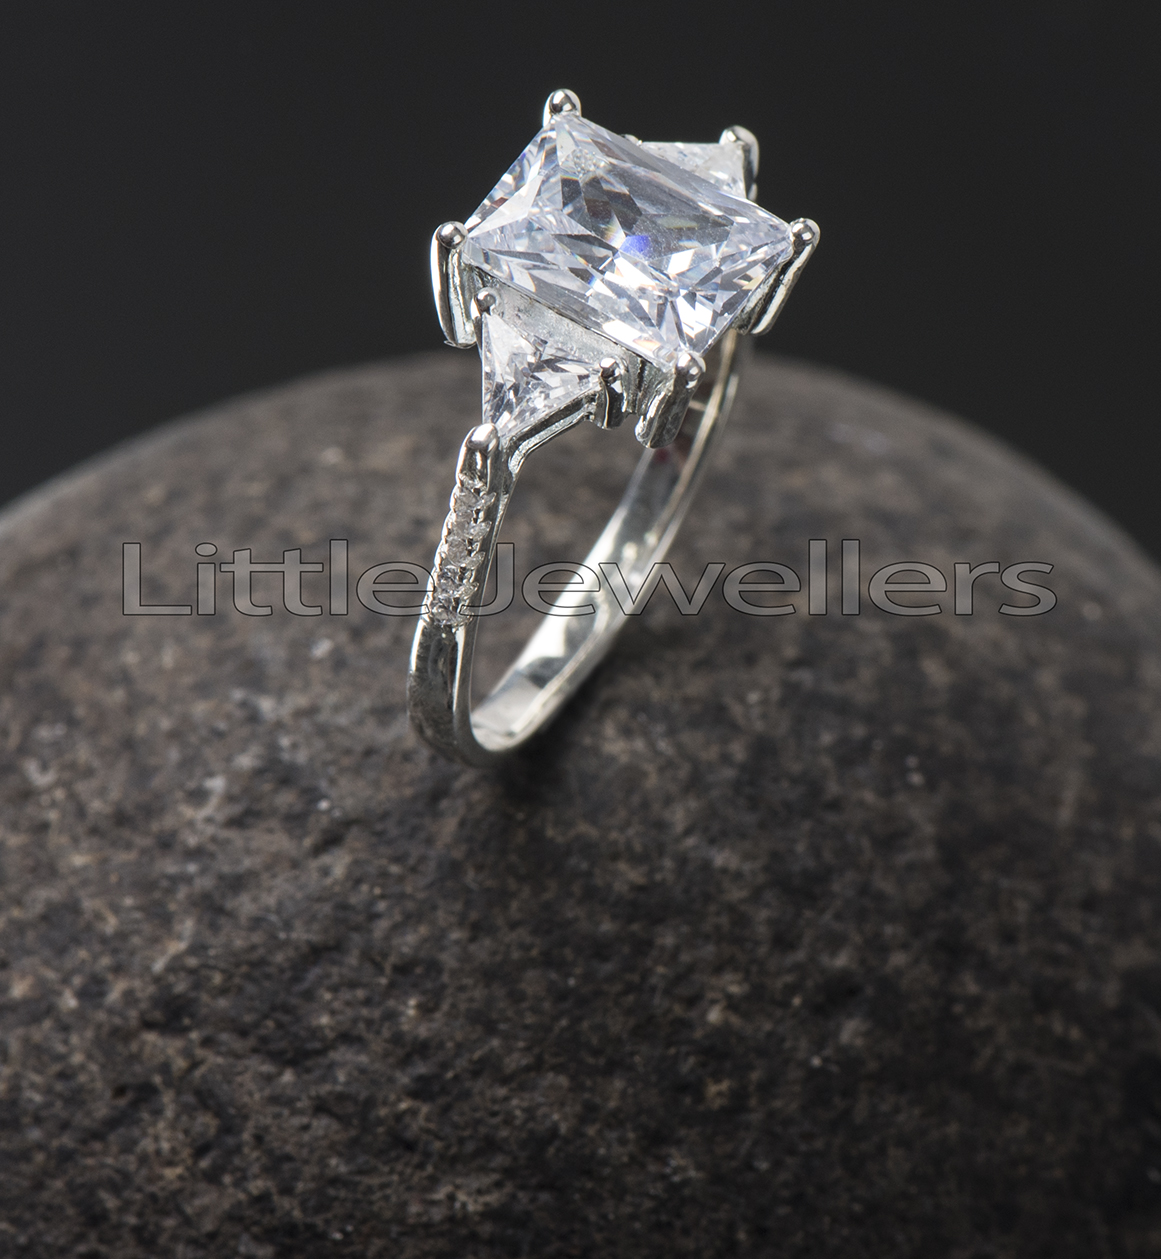 A delicate and sparkly silver engagement ring